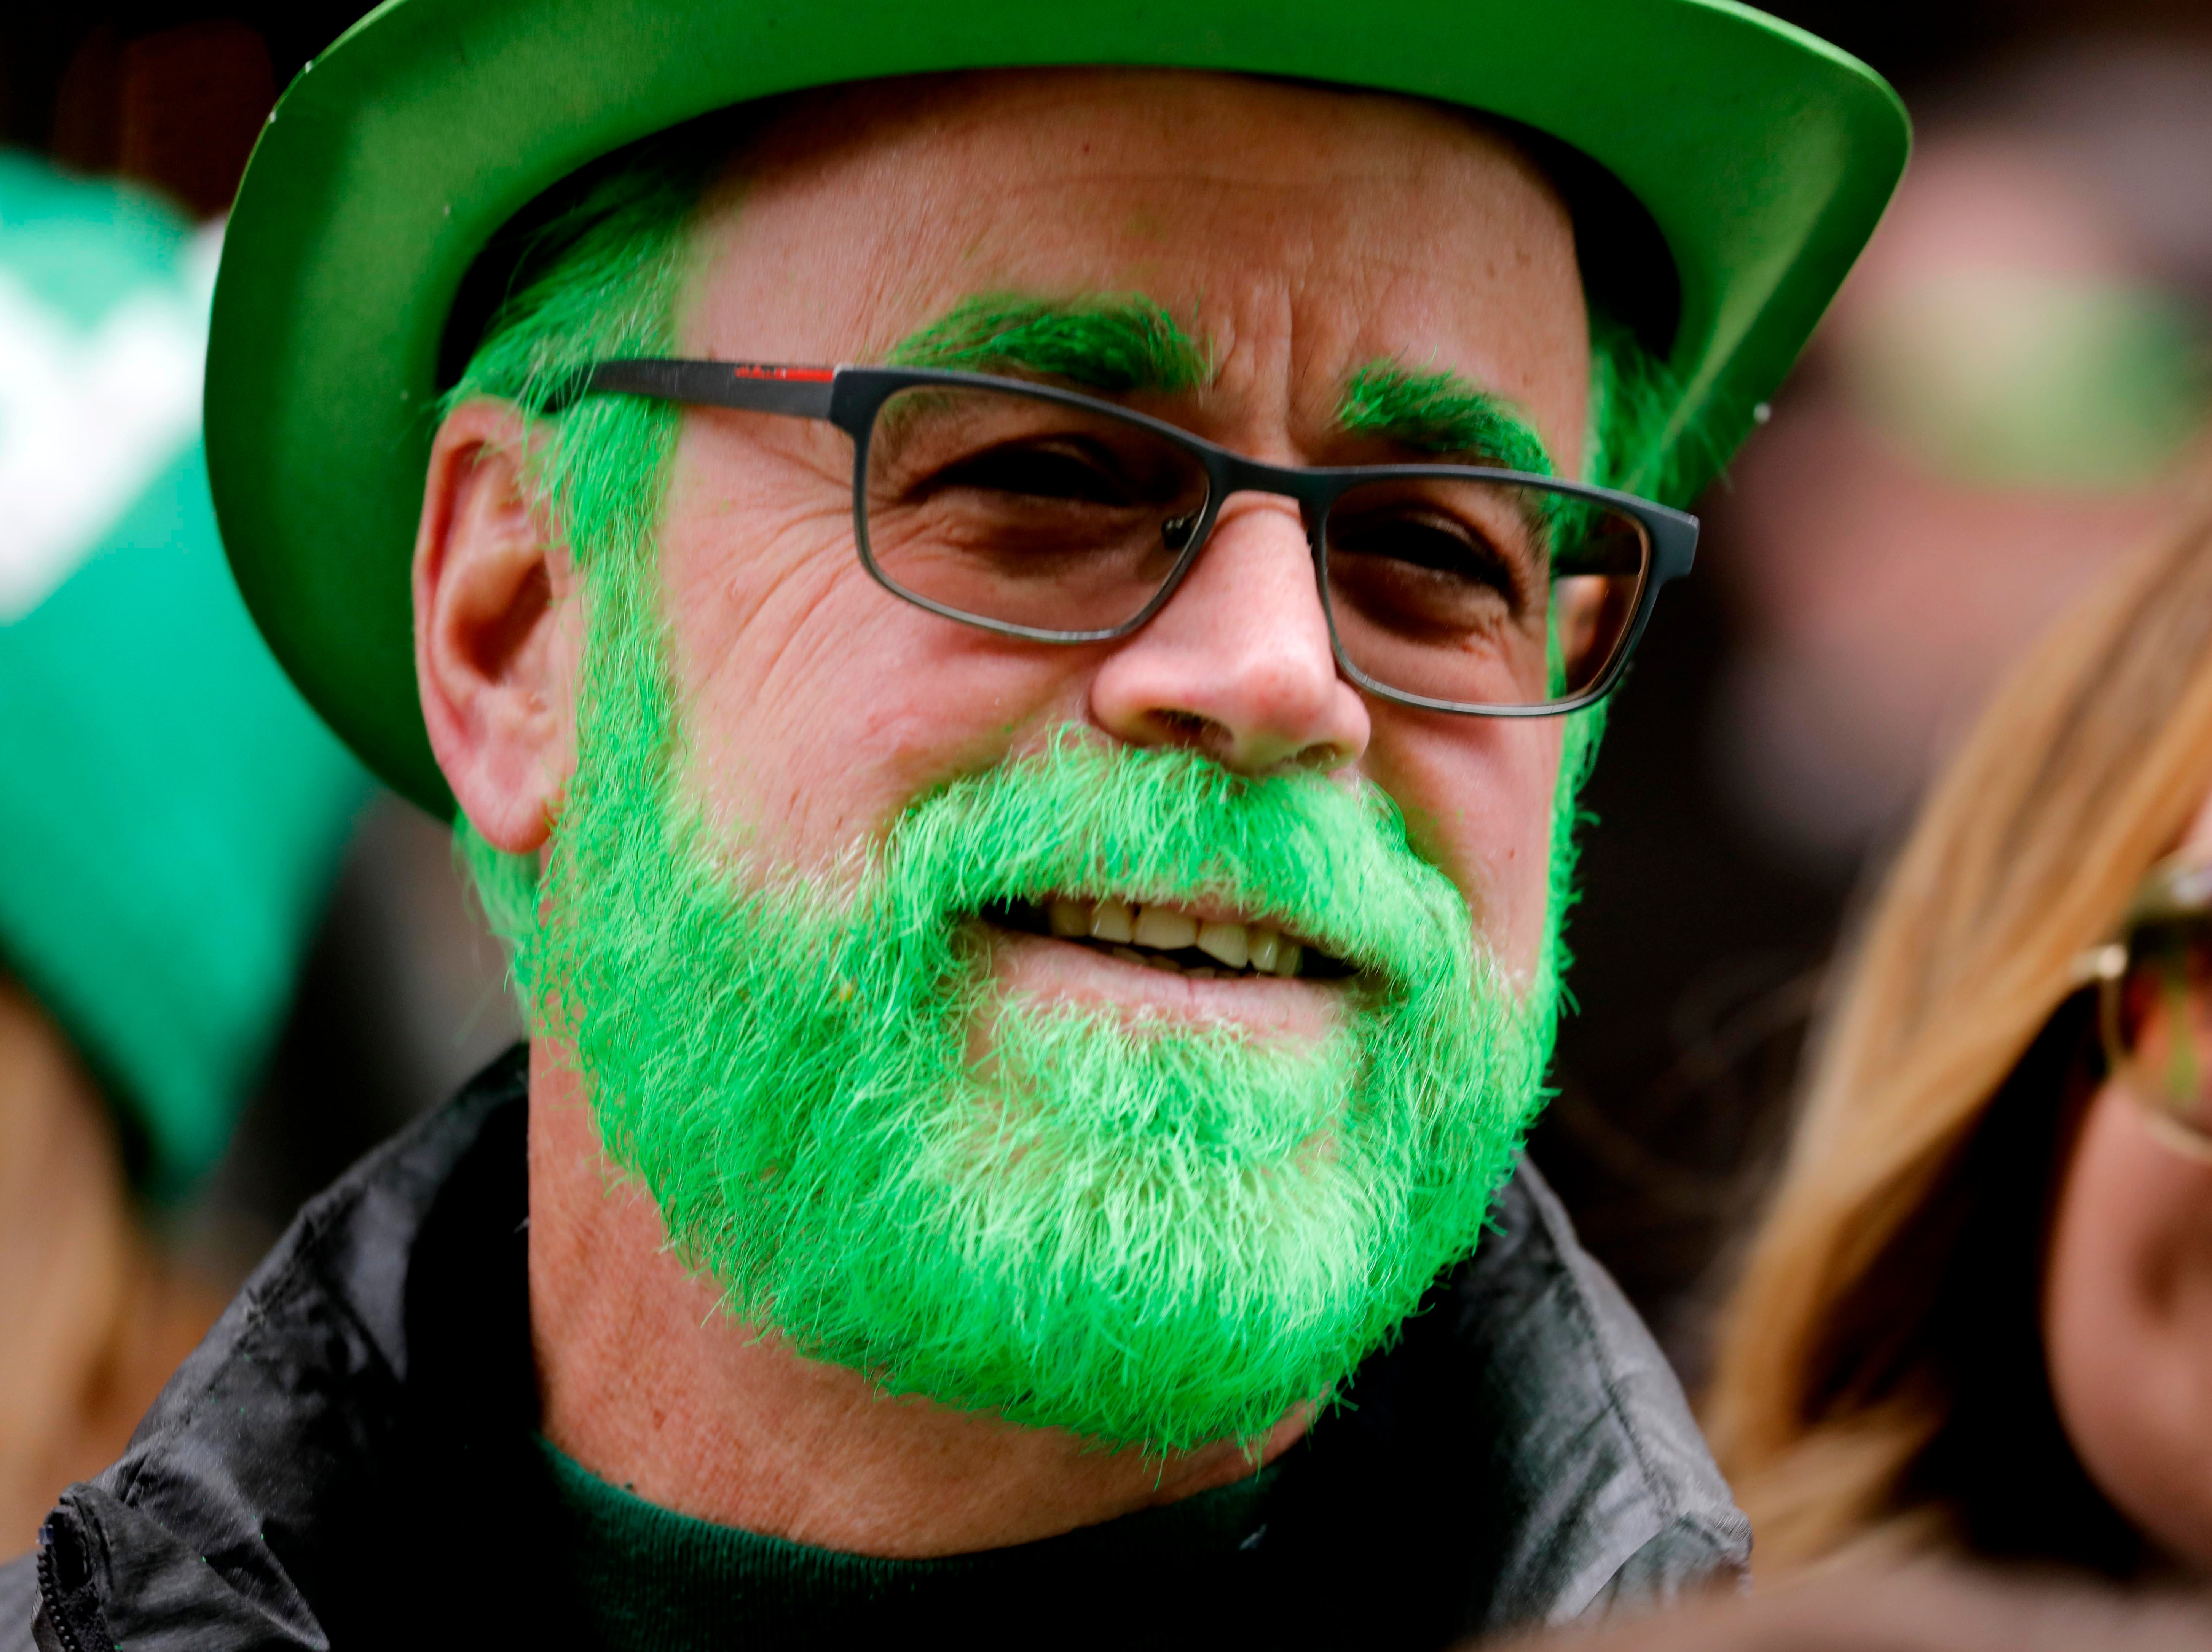 Tom Menton of Yorktown, N.Y. with a beard dyed appropriately for the occasion, was among the hundreds of thousands that lined Fifth Ave. in Manhattan for the 258th annual St. Patrick's Day Parade on March 16, 2019.